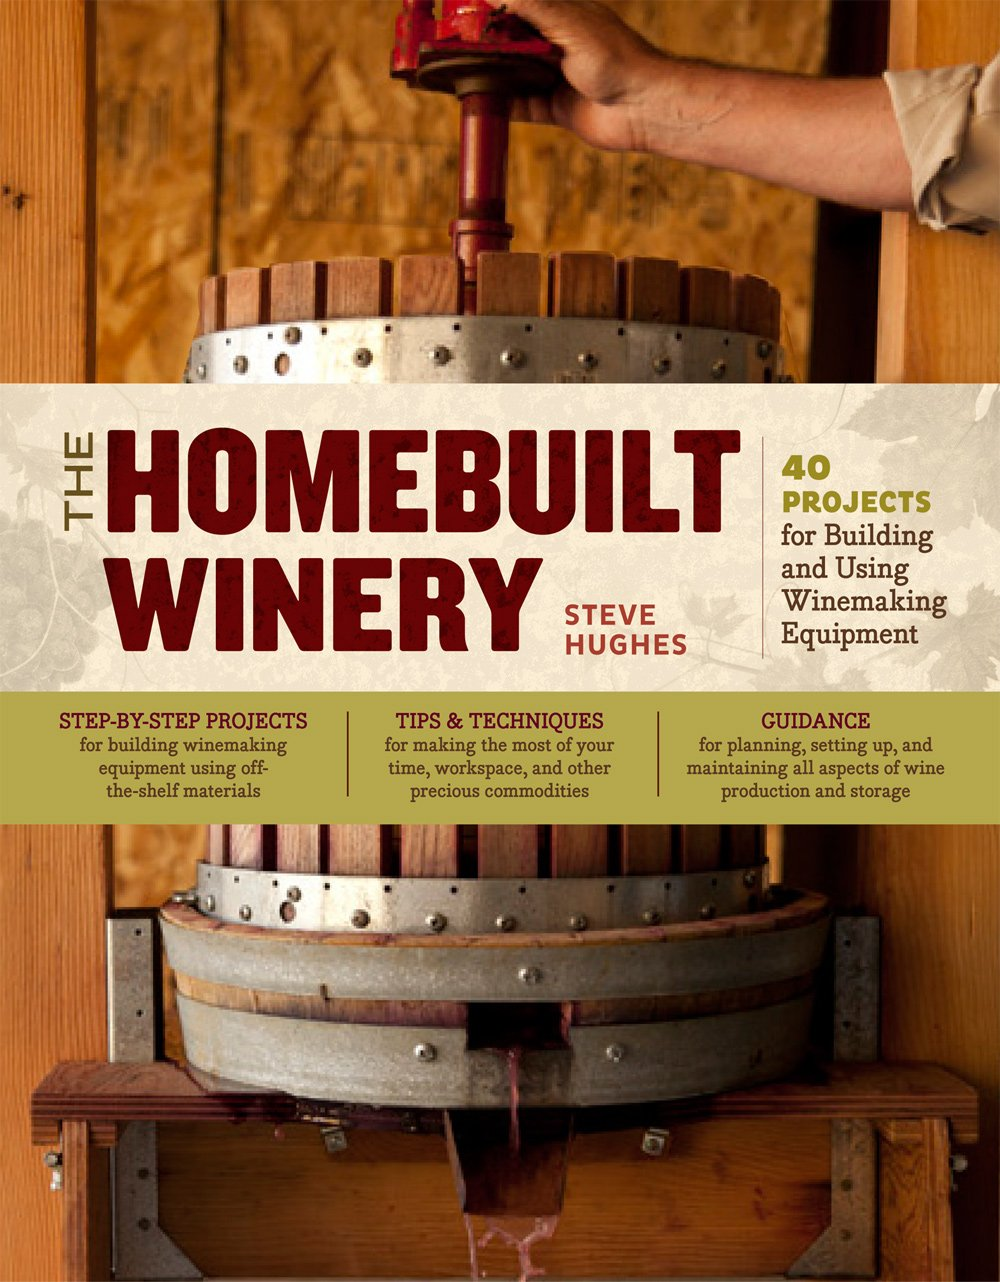 the-homebuilt-winery-43-projects-for-building-and-using-winemaking-equipment